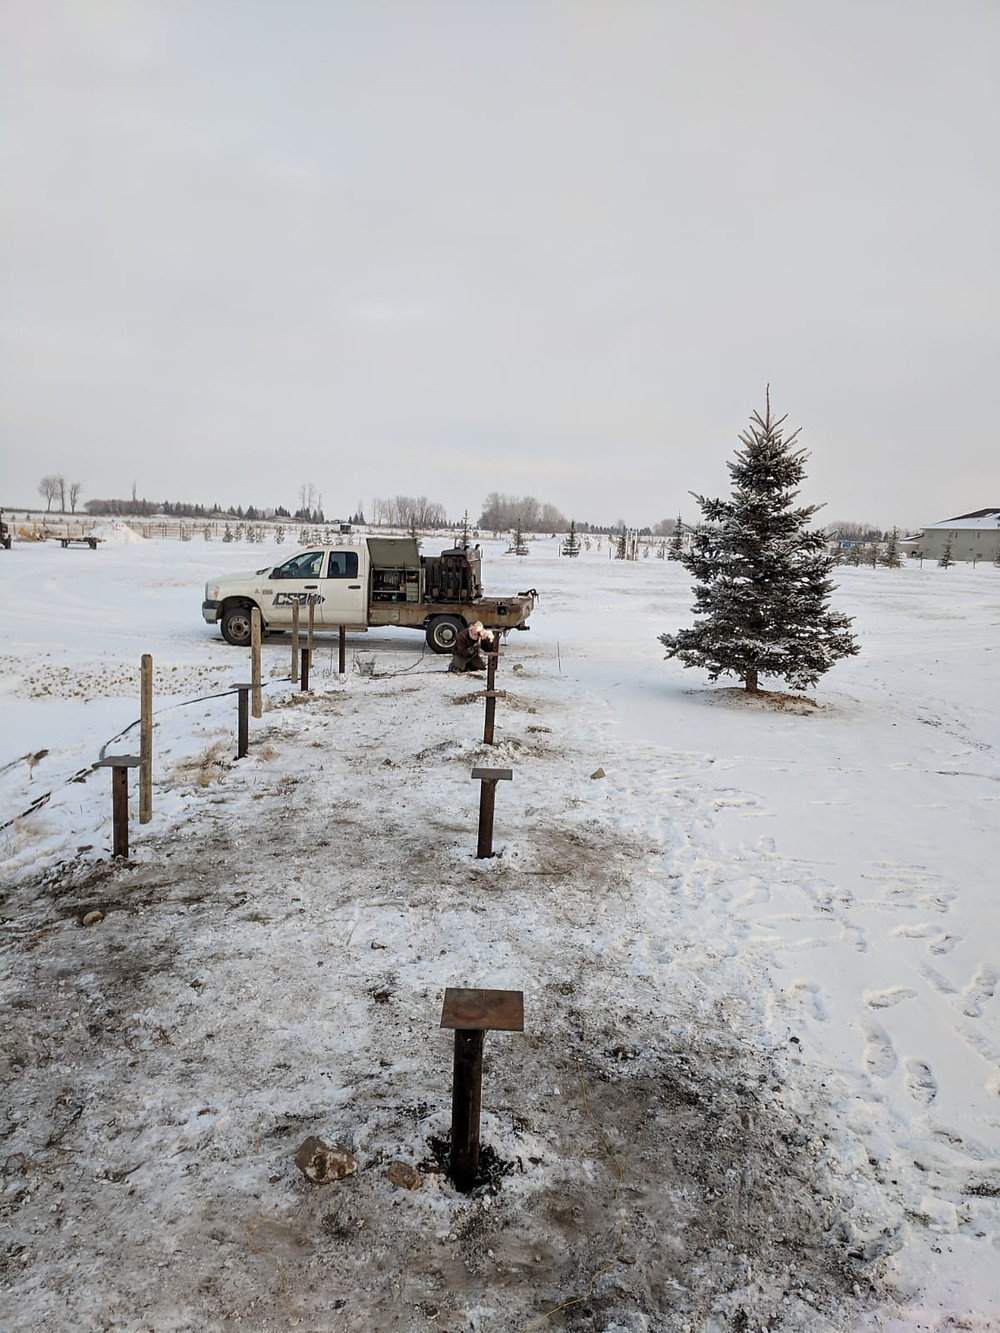 Screw piles installed in the snow at a construction site in Alberta, Canada.